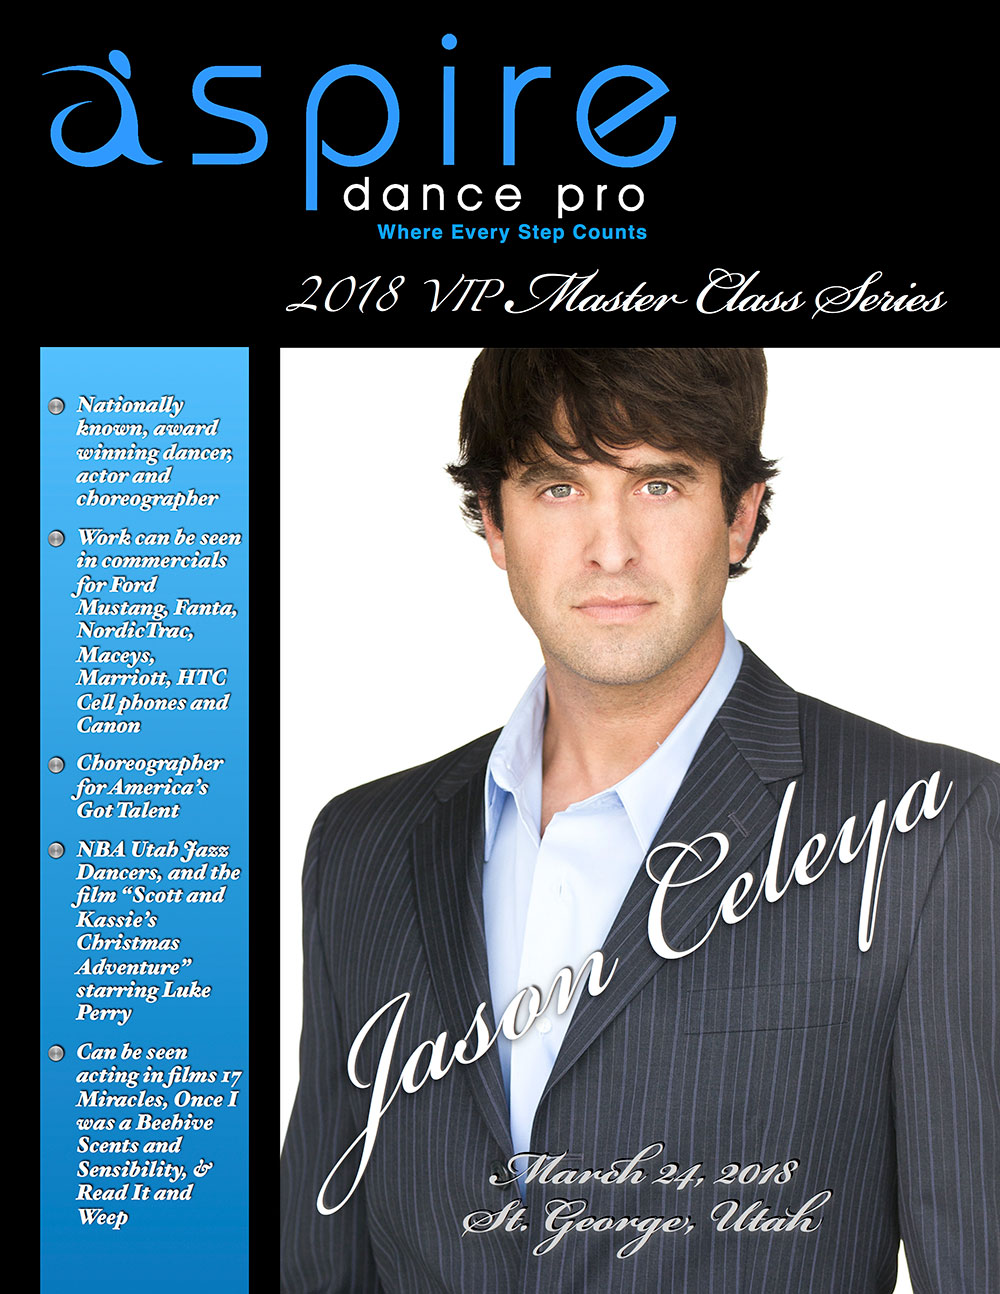 Jason Celaya - Aspire Dance Pro Commpetitions Masterclass Instructor